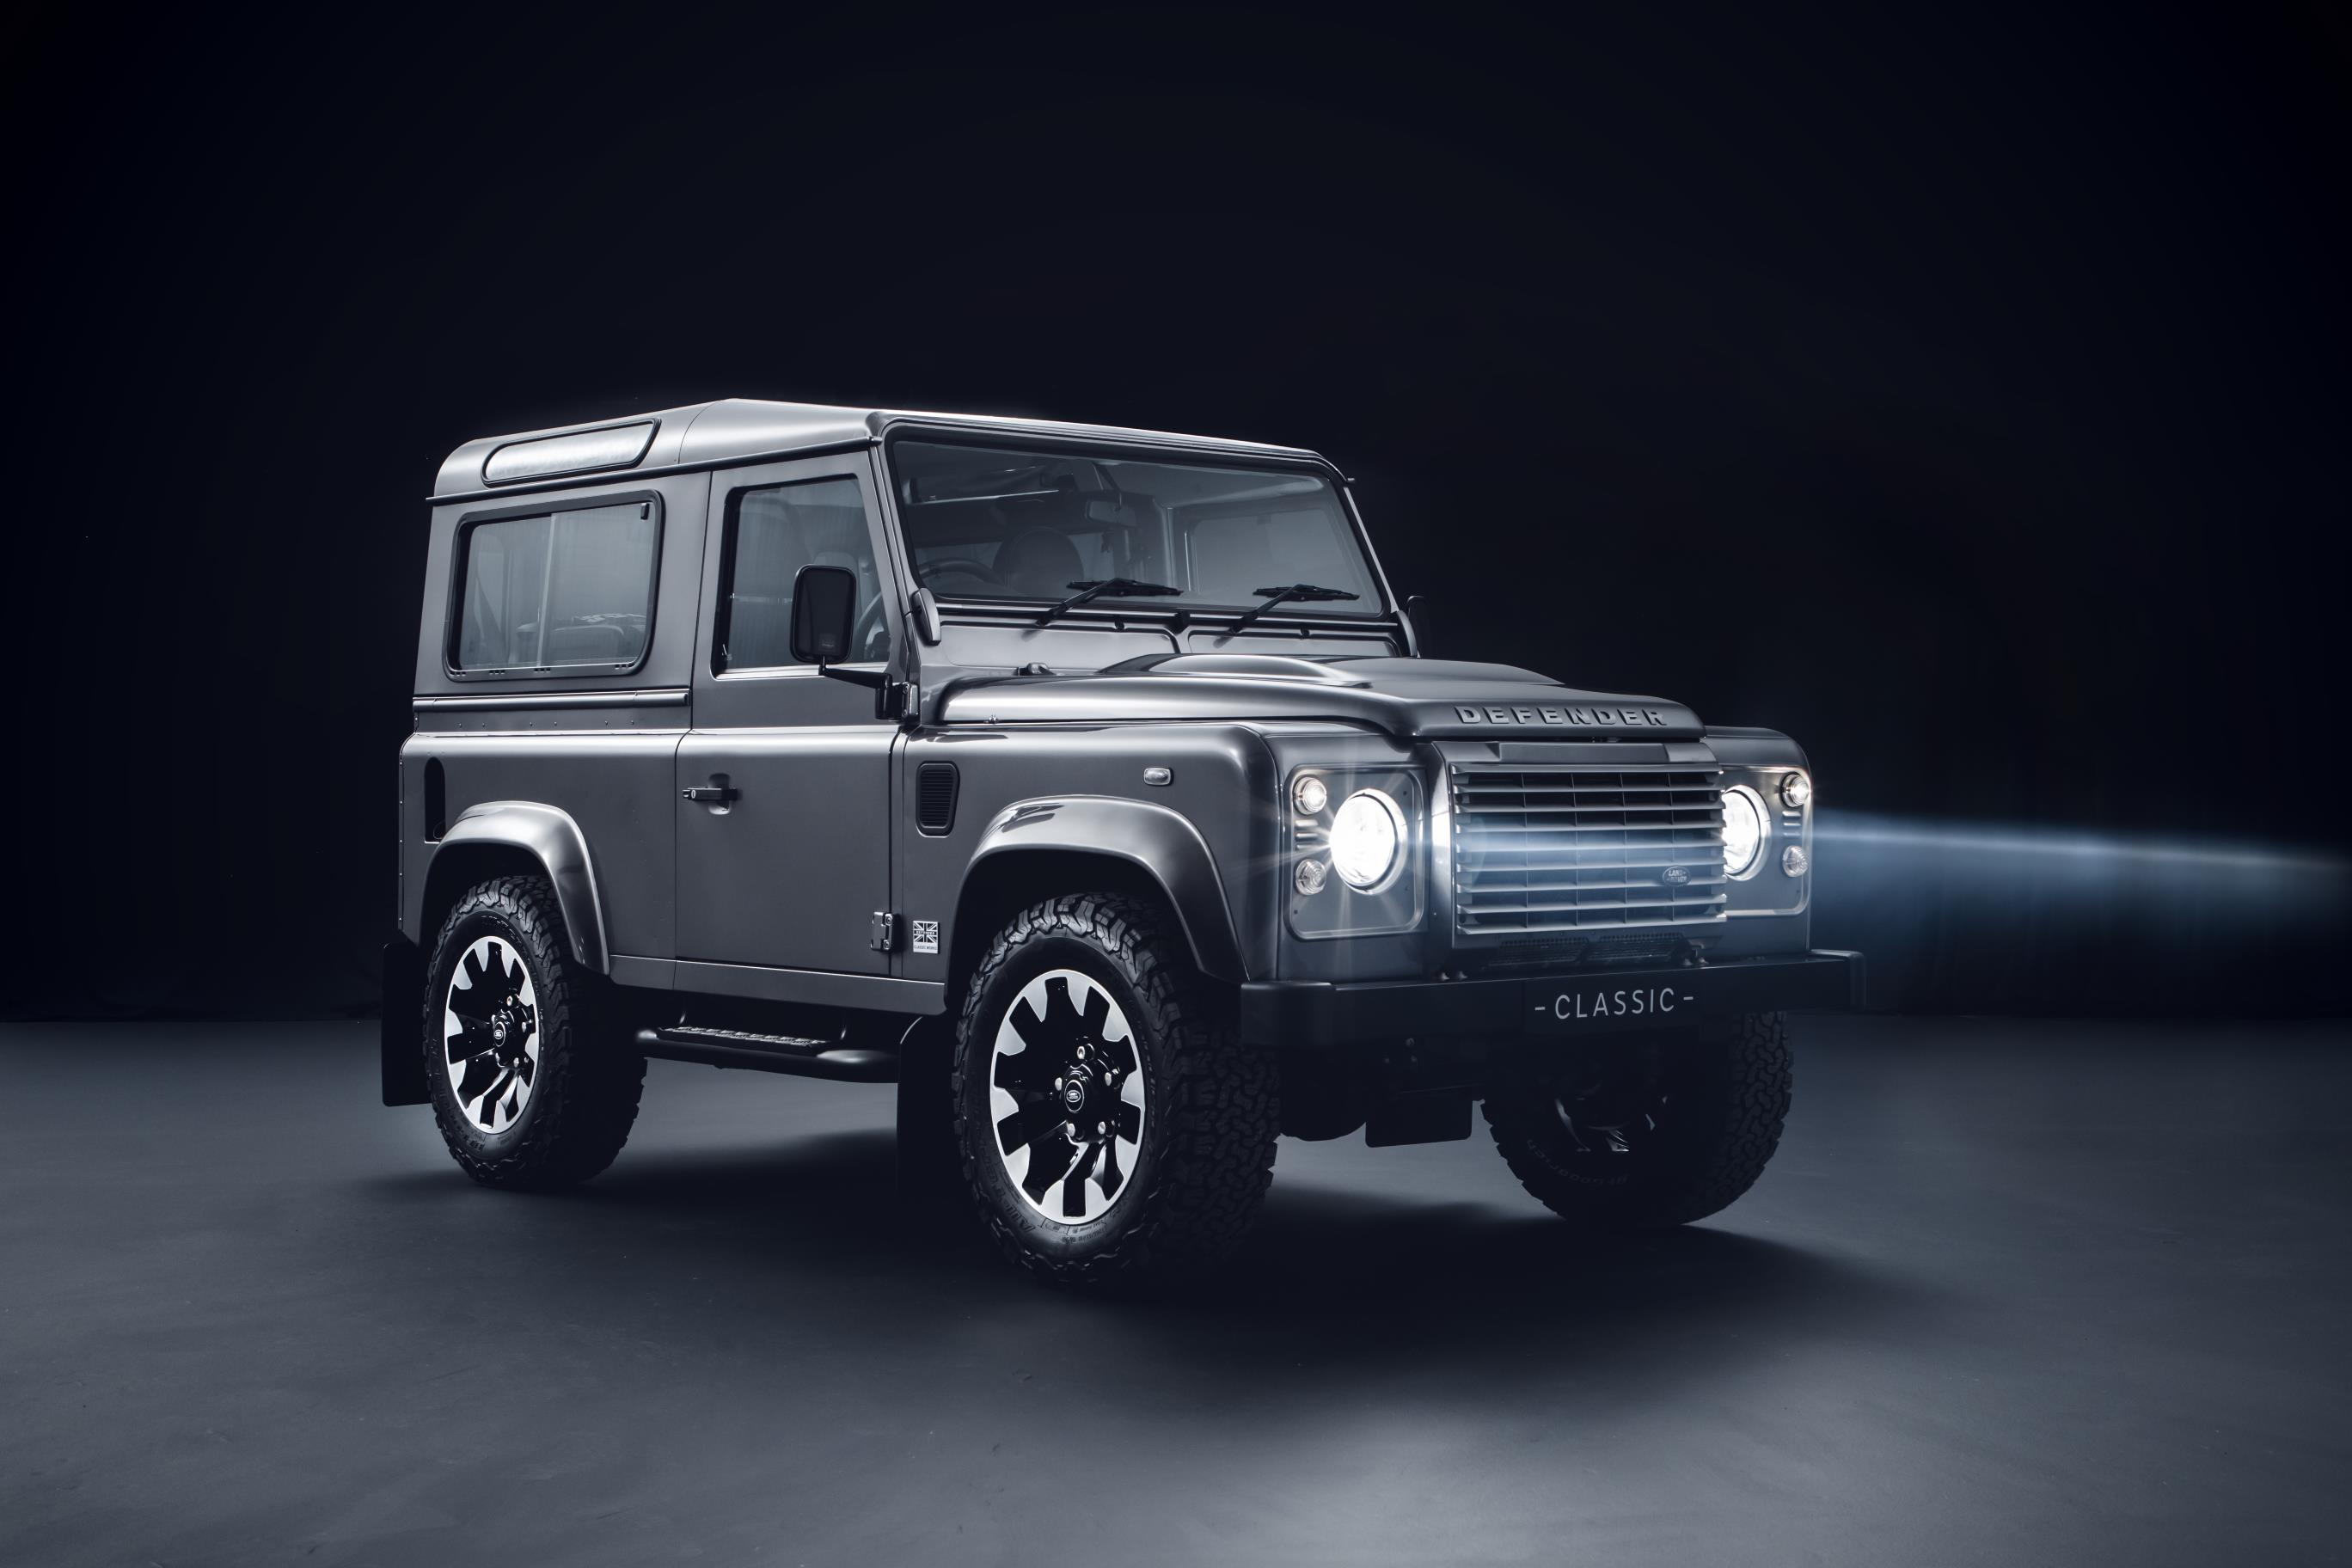 The classic Defender is hard to miss